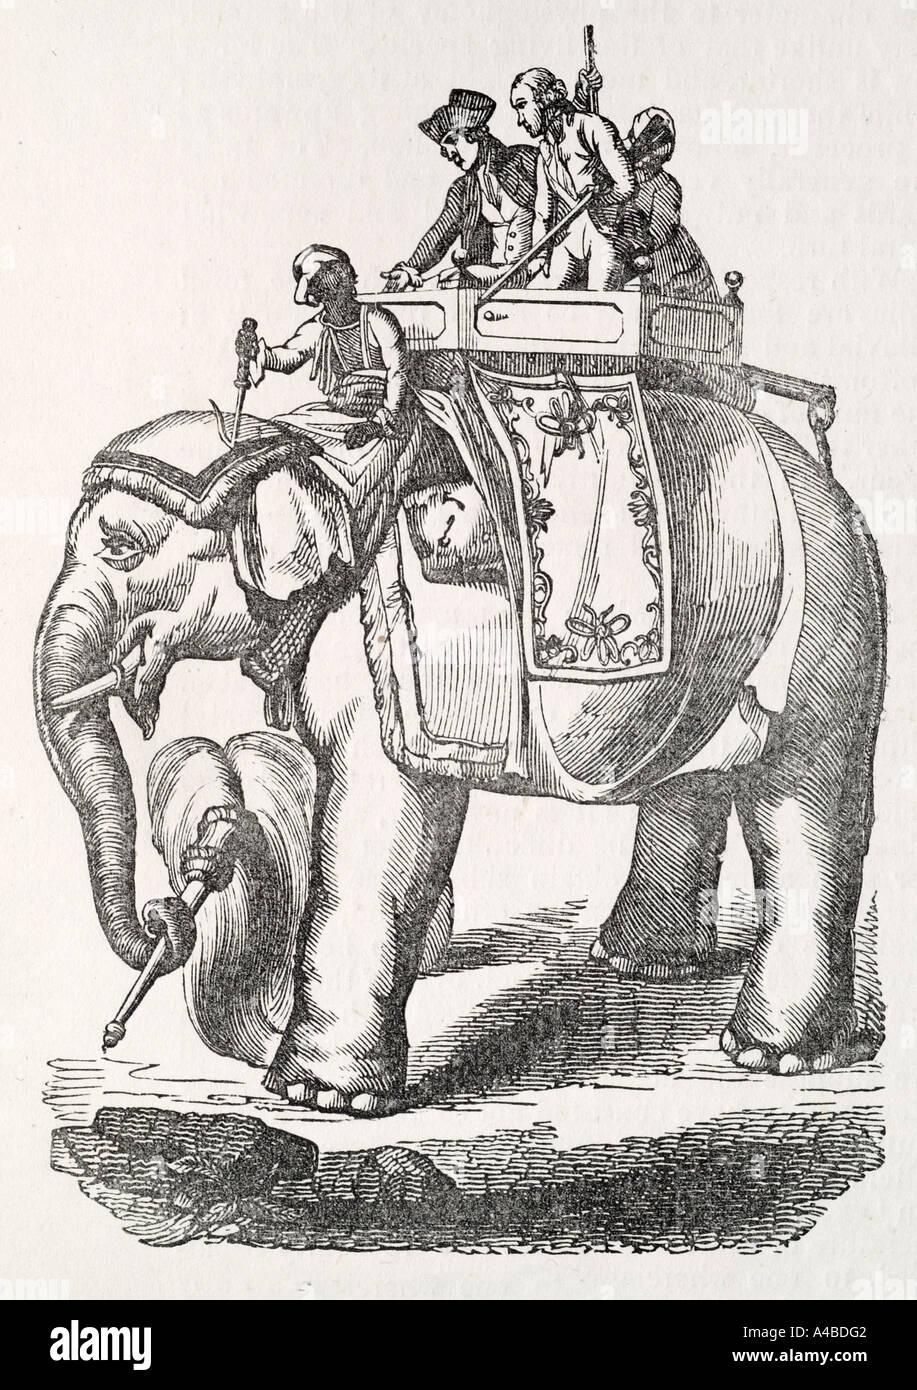 warren hastings elephant India Indian mammal breed tusk ivory Nature natural world jungle tropical tame work strong heavy howdah - Stock Image